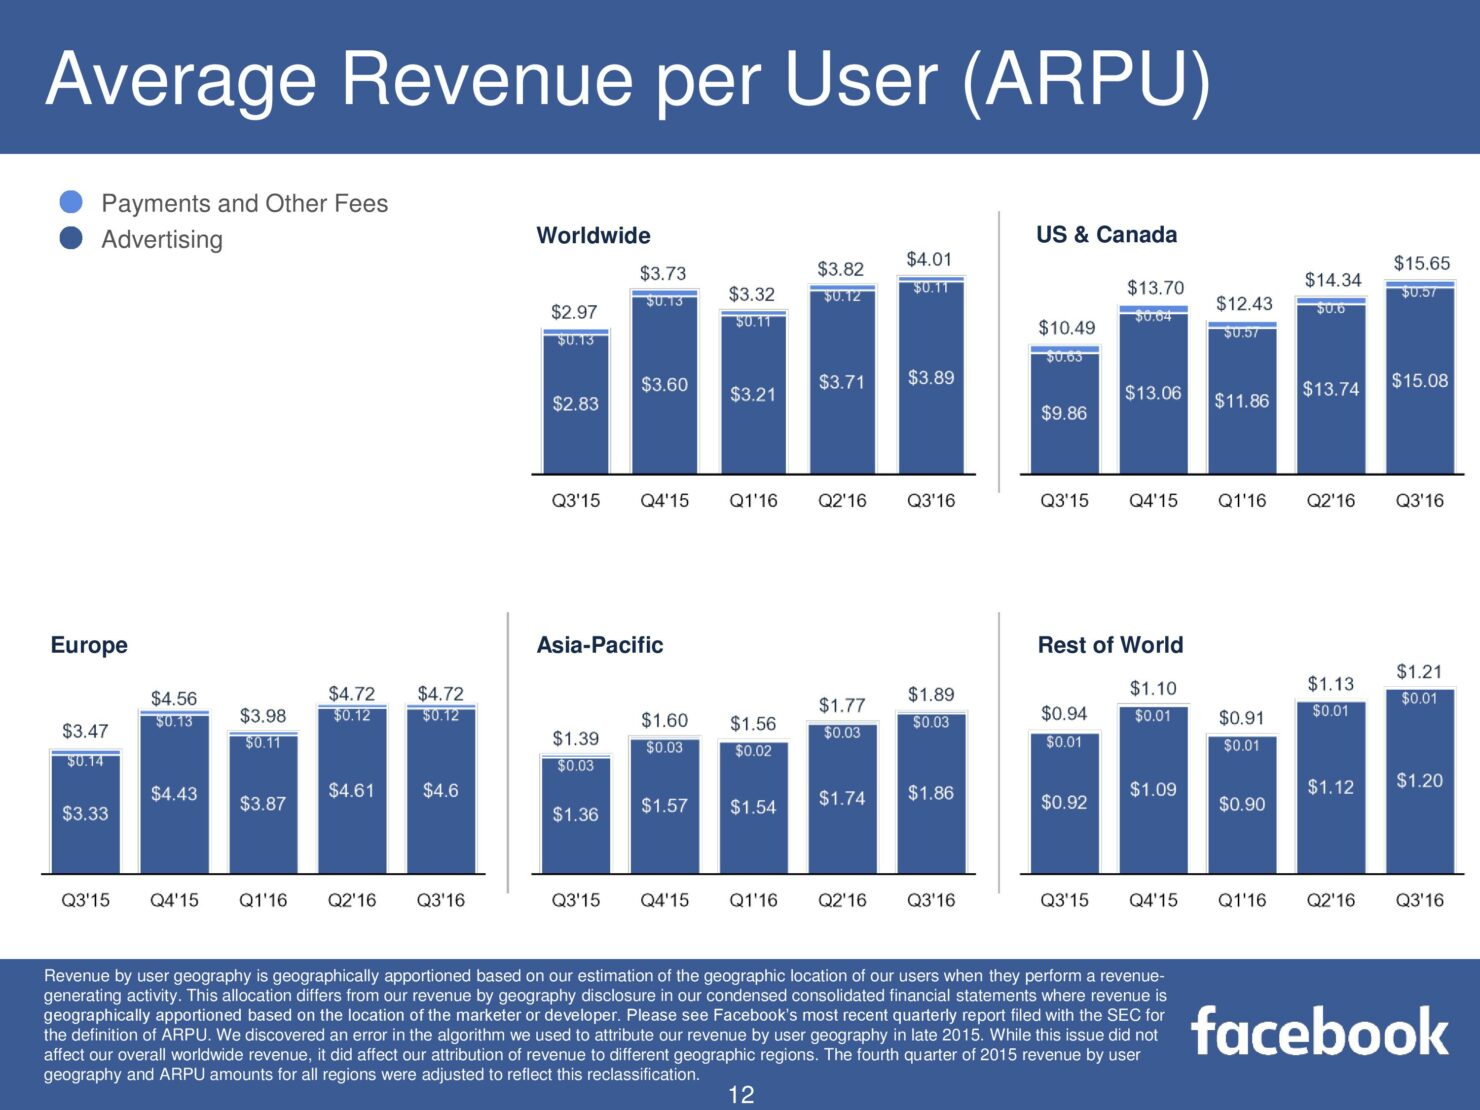 fb-q316-earnings-slides-page-012